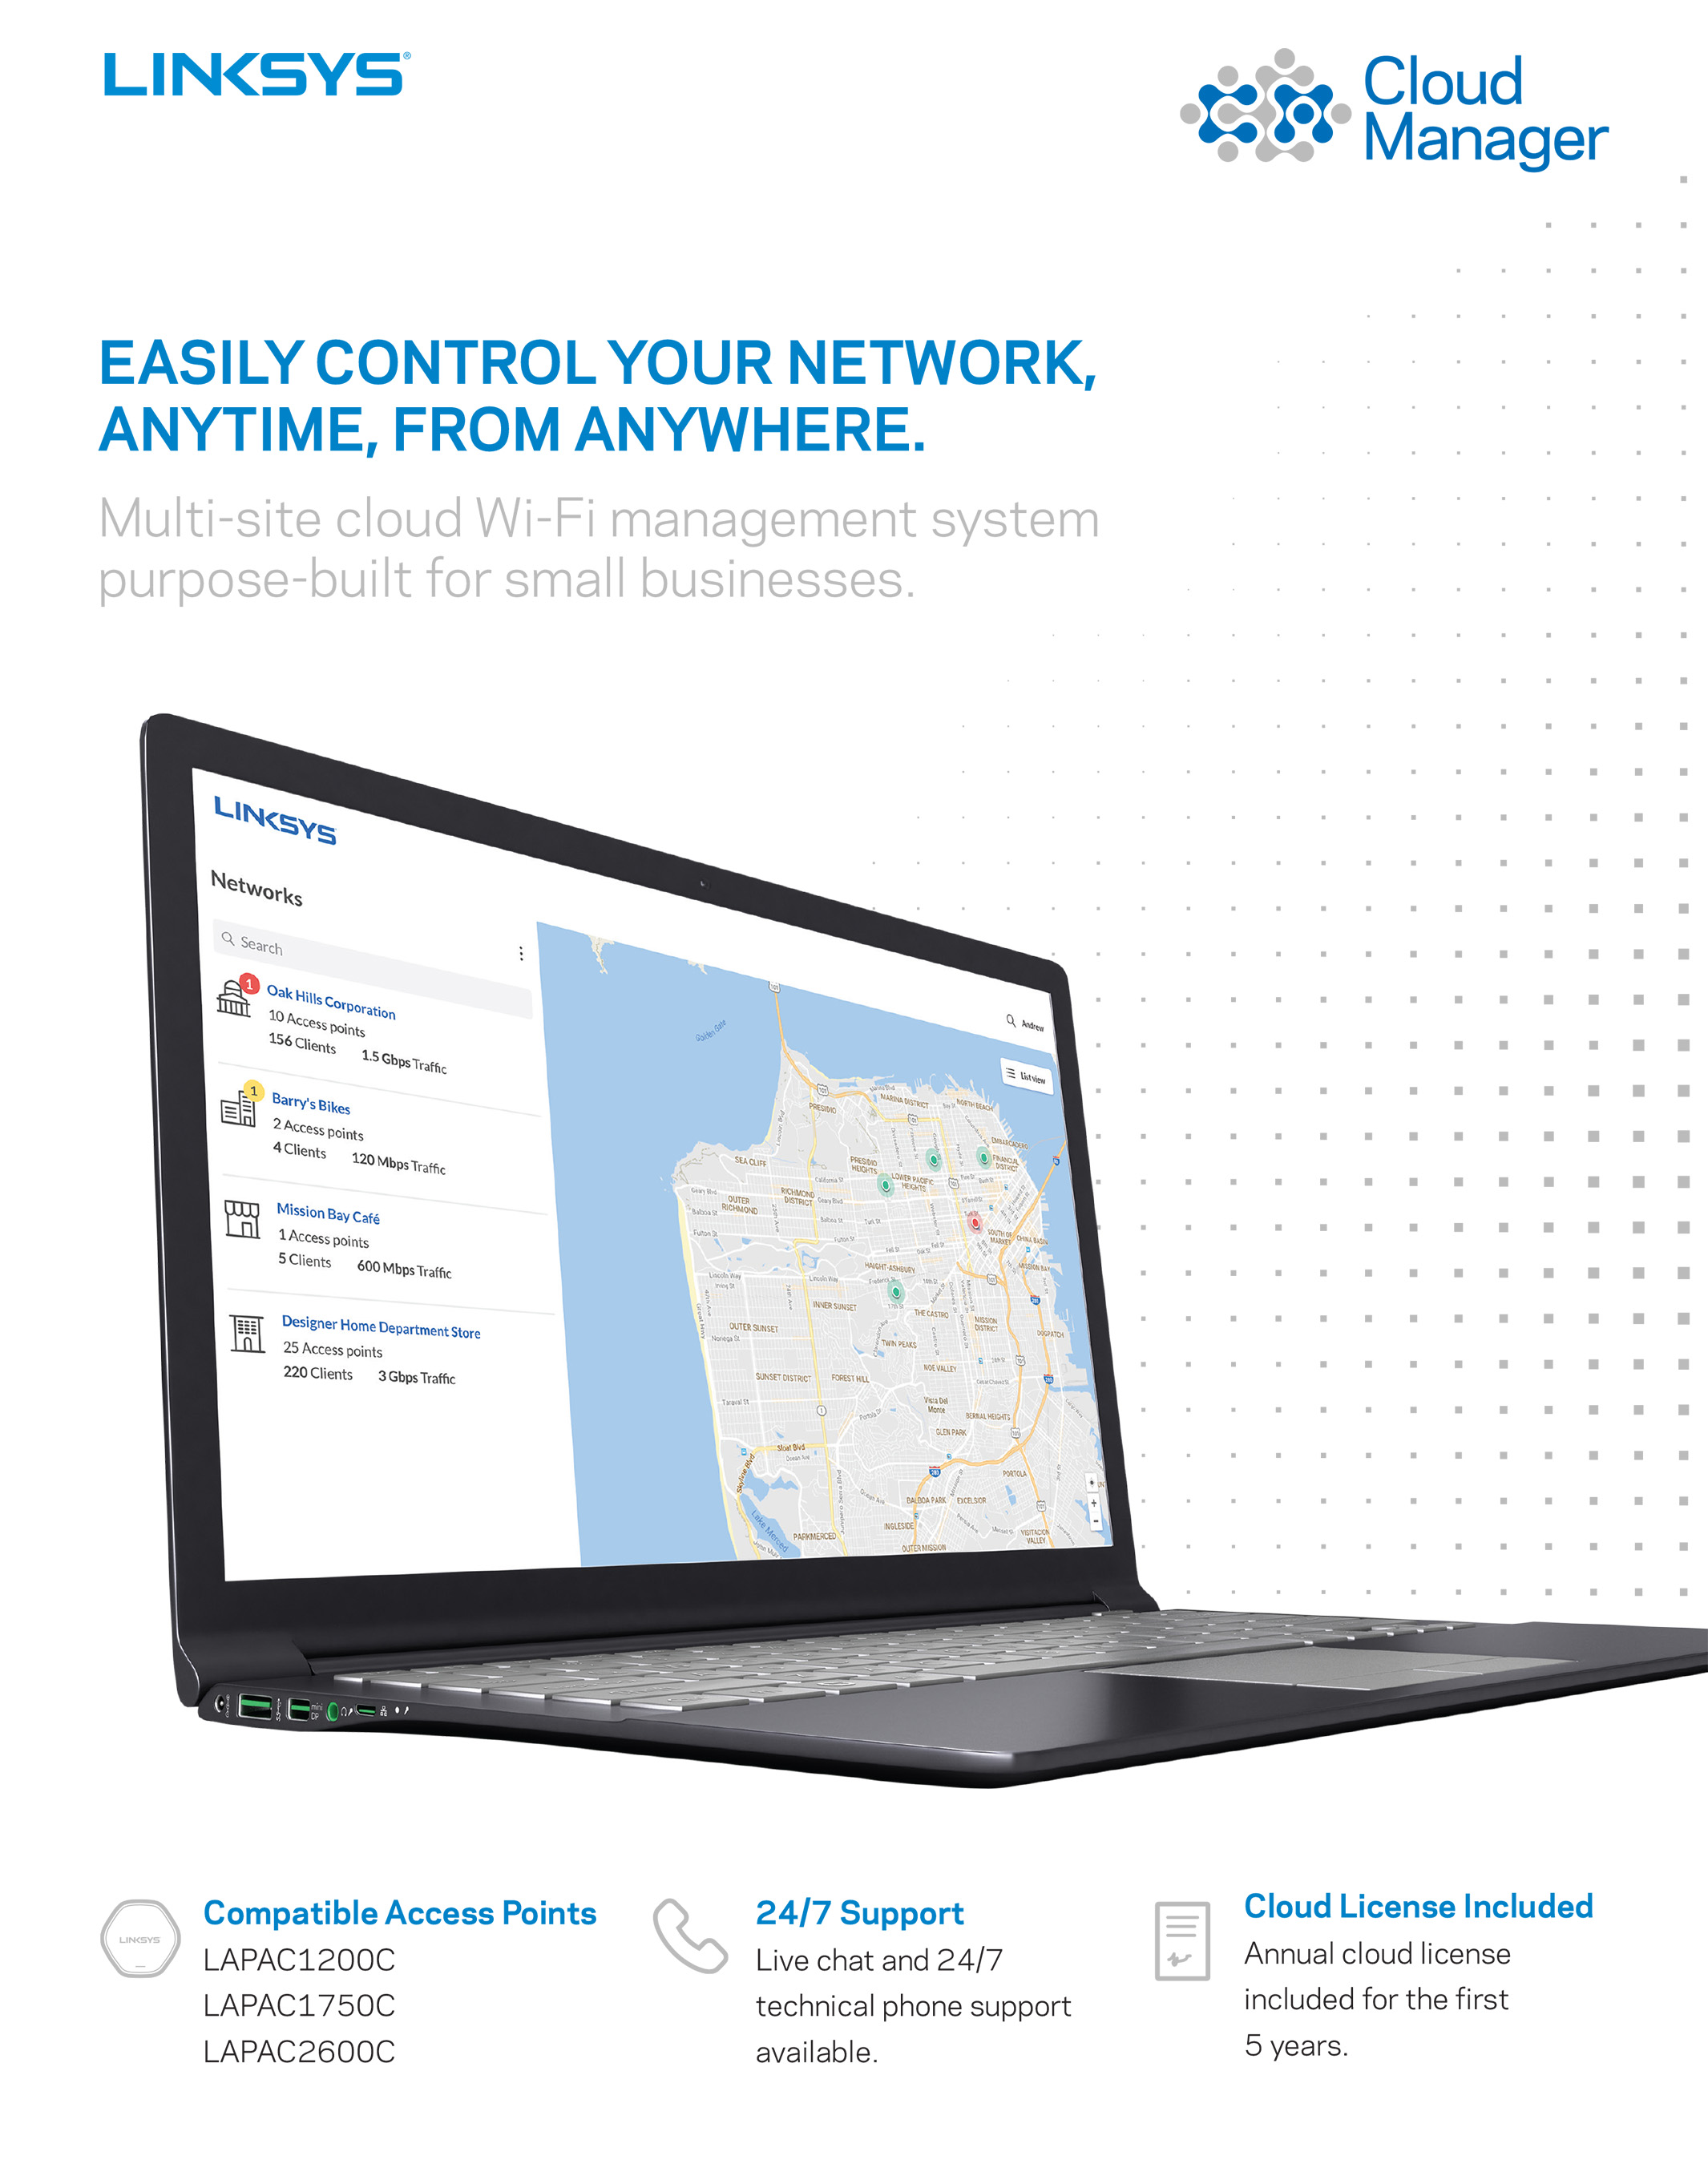 Linksys Cloud Manager Data Sheet